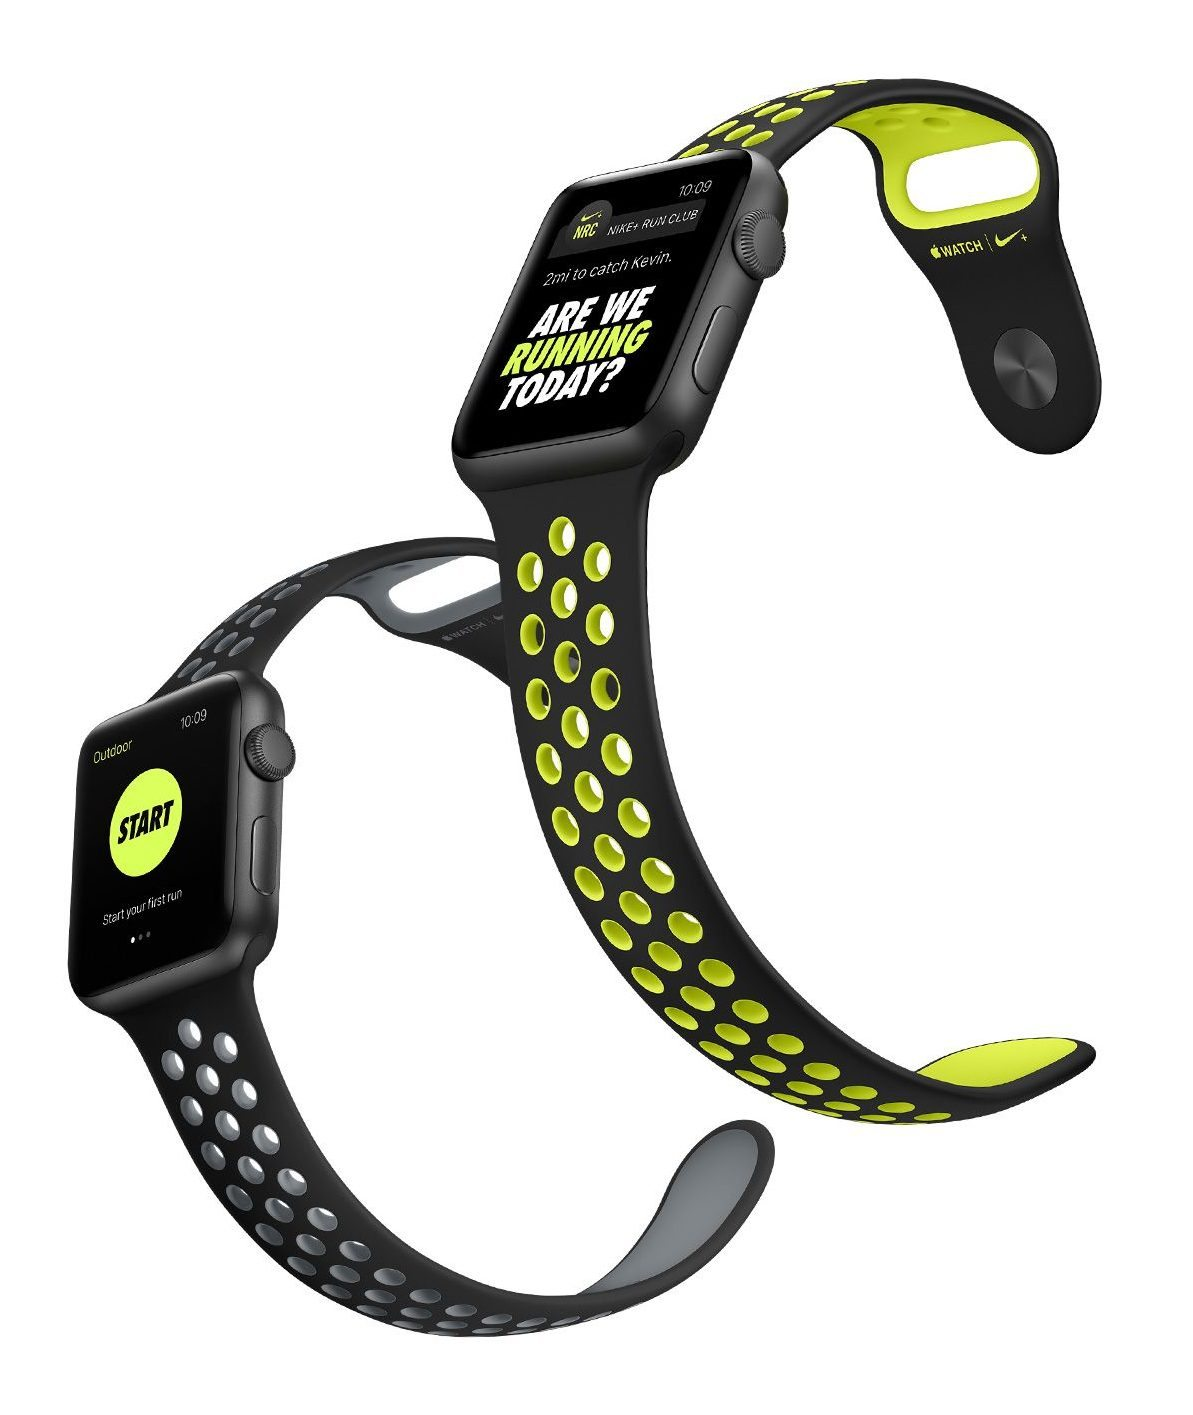 guide to the apple watch series 2 nike 2 - Guide to the Apple Watch Series 2 Nike+